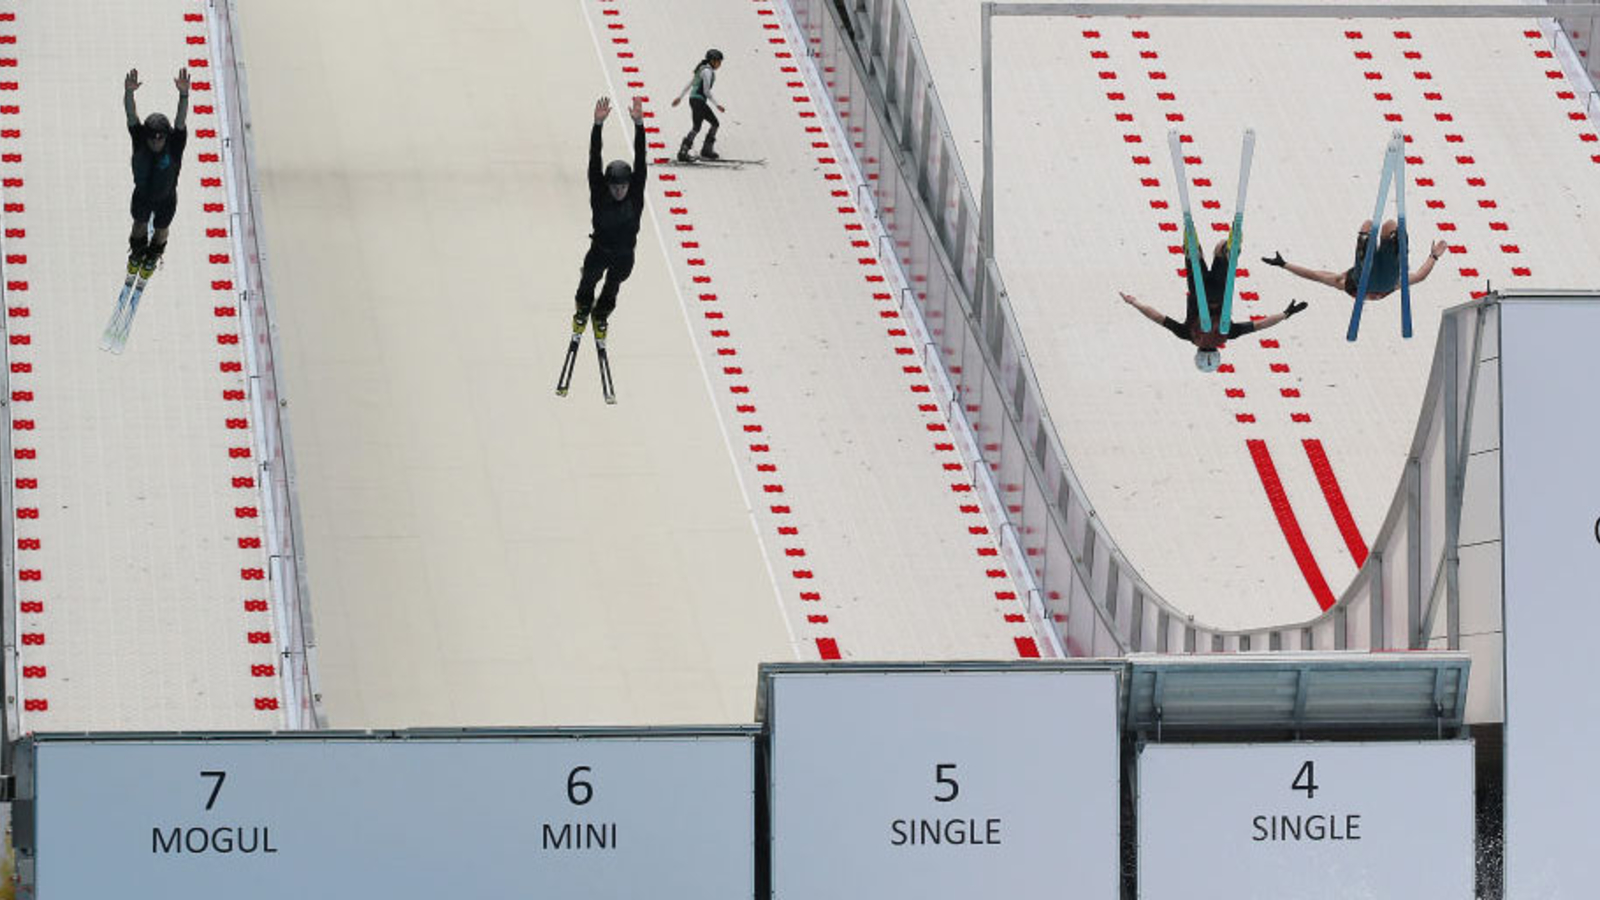 Australia on its way to becoming a winter sports powerhouse?